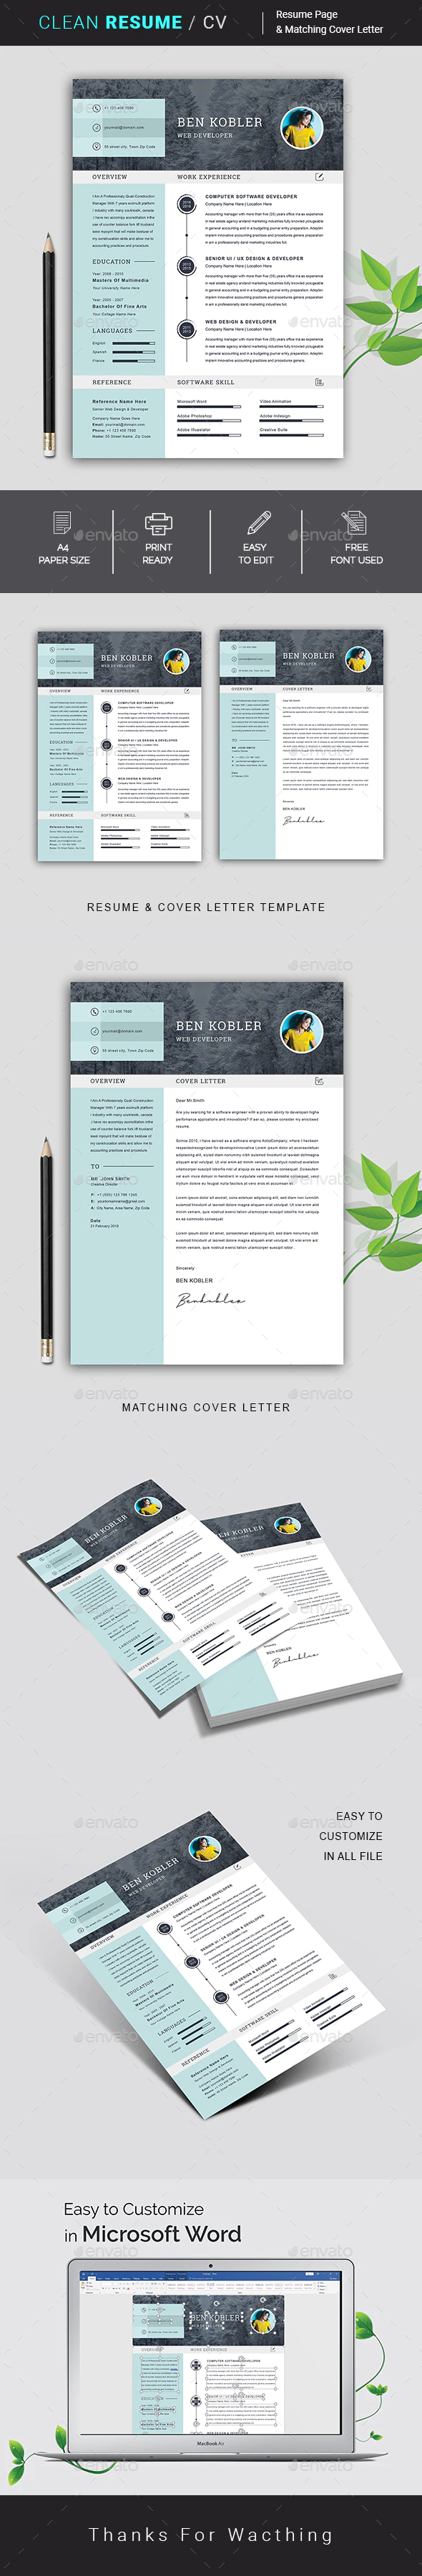 Pin by Jessica Brown on resume Resume, Cv template